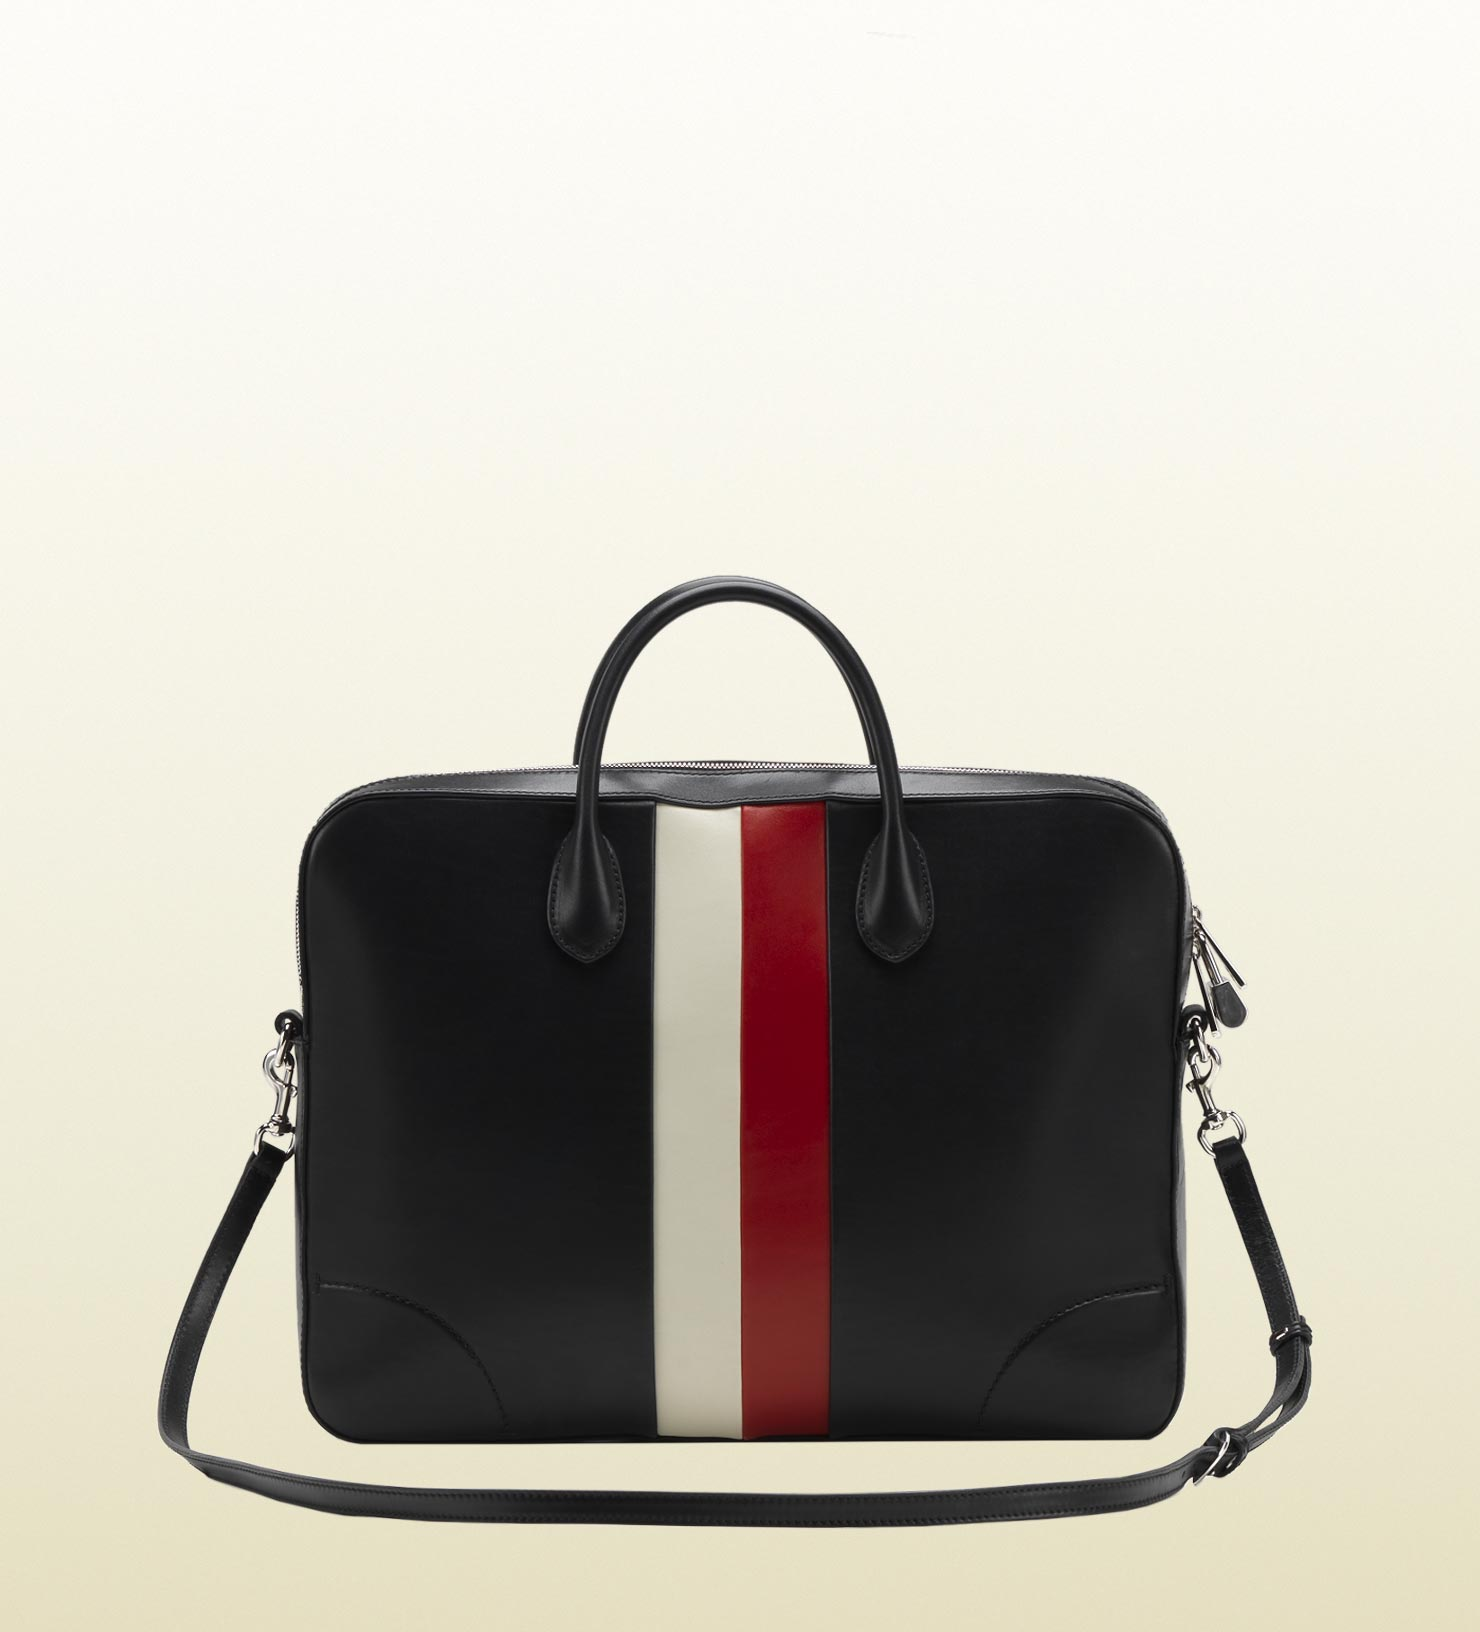 GUCCI men black leather briefcase red white 1